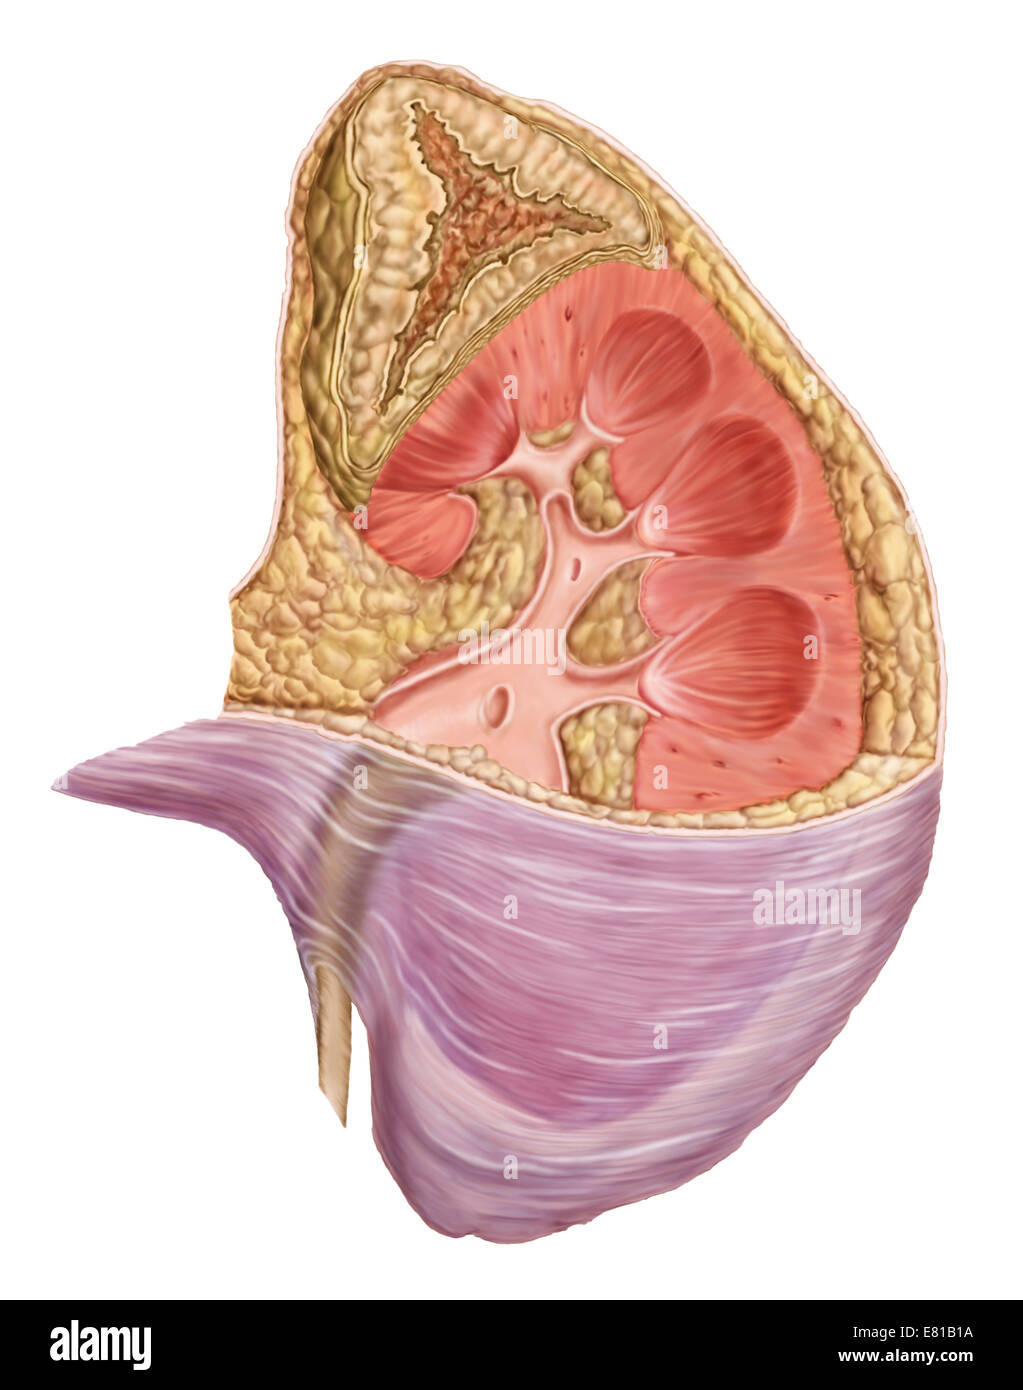 Cutaway View Of The Human Kidney And Adrenal Gland Stock Photo